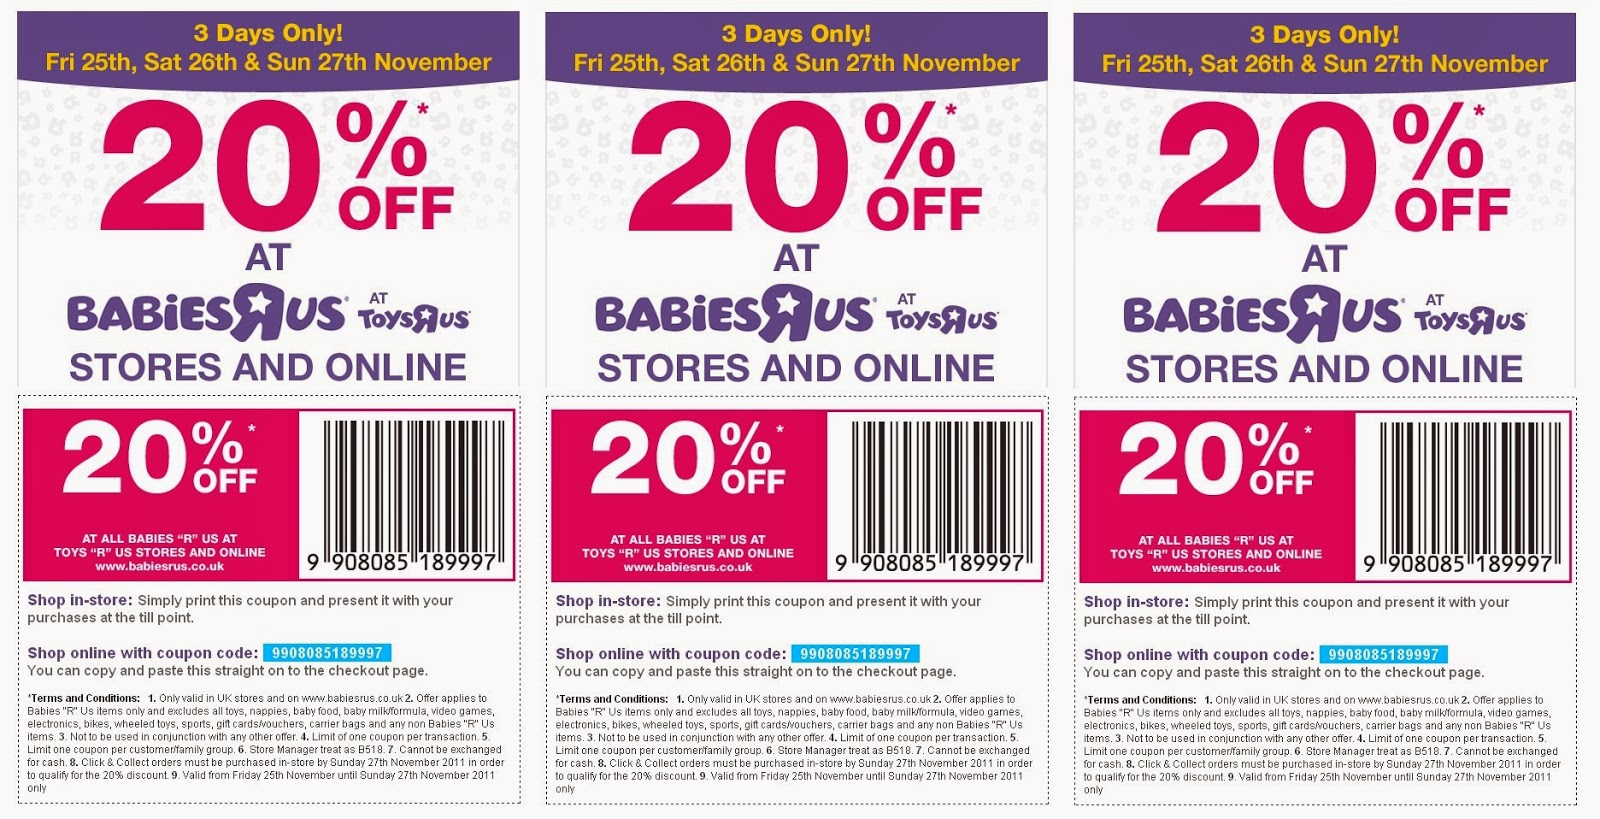 Best zip codes for coupons 2018